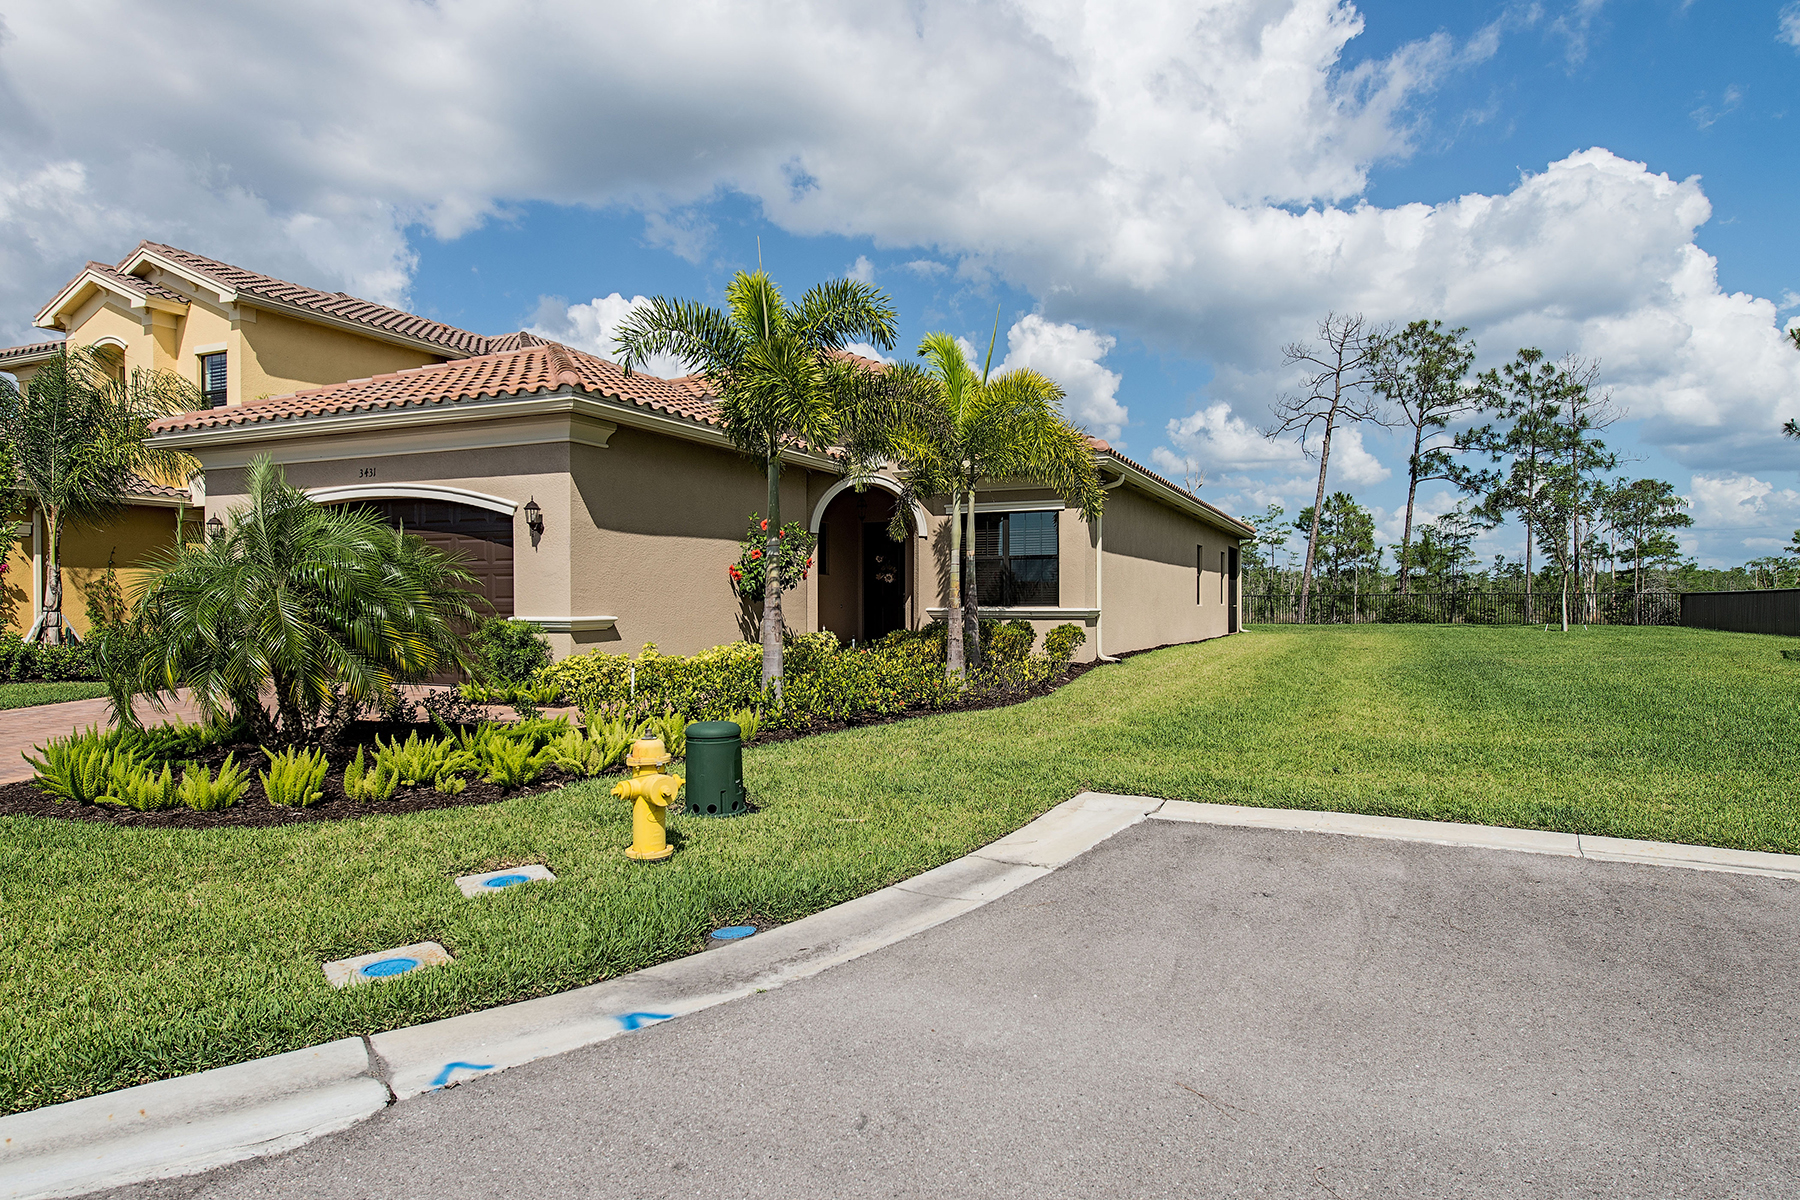 Single Family Home for Sale at RIVERSTONE 3431 Baltic Dr Naples, Florida 34119 United States